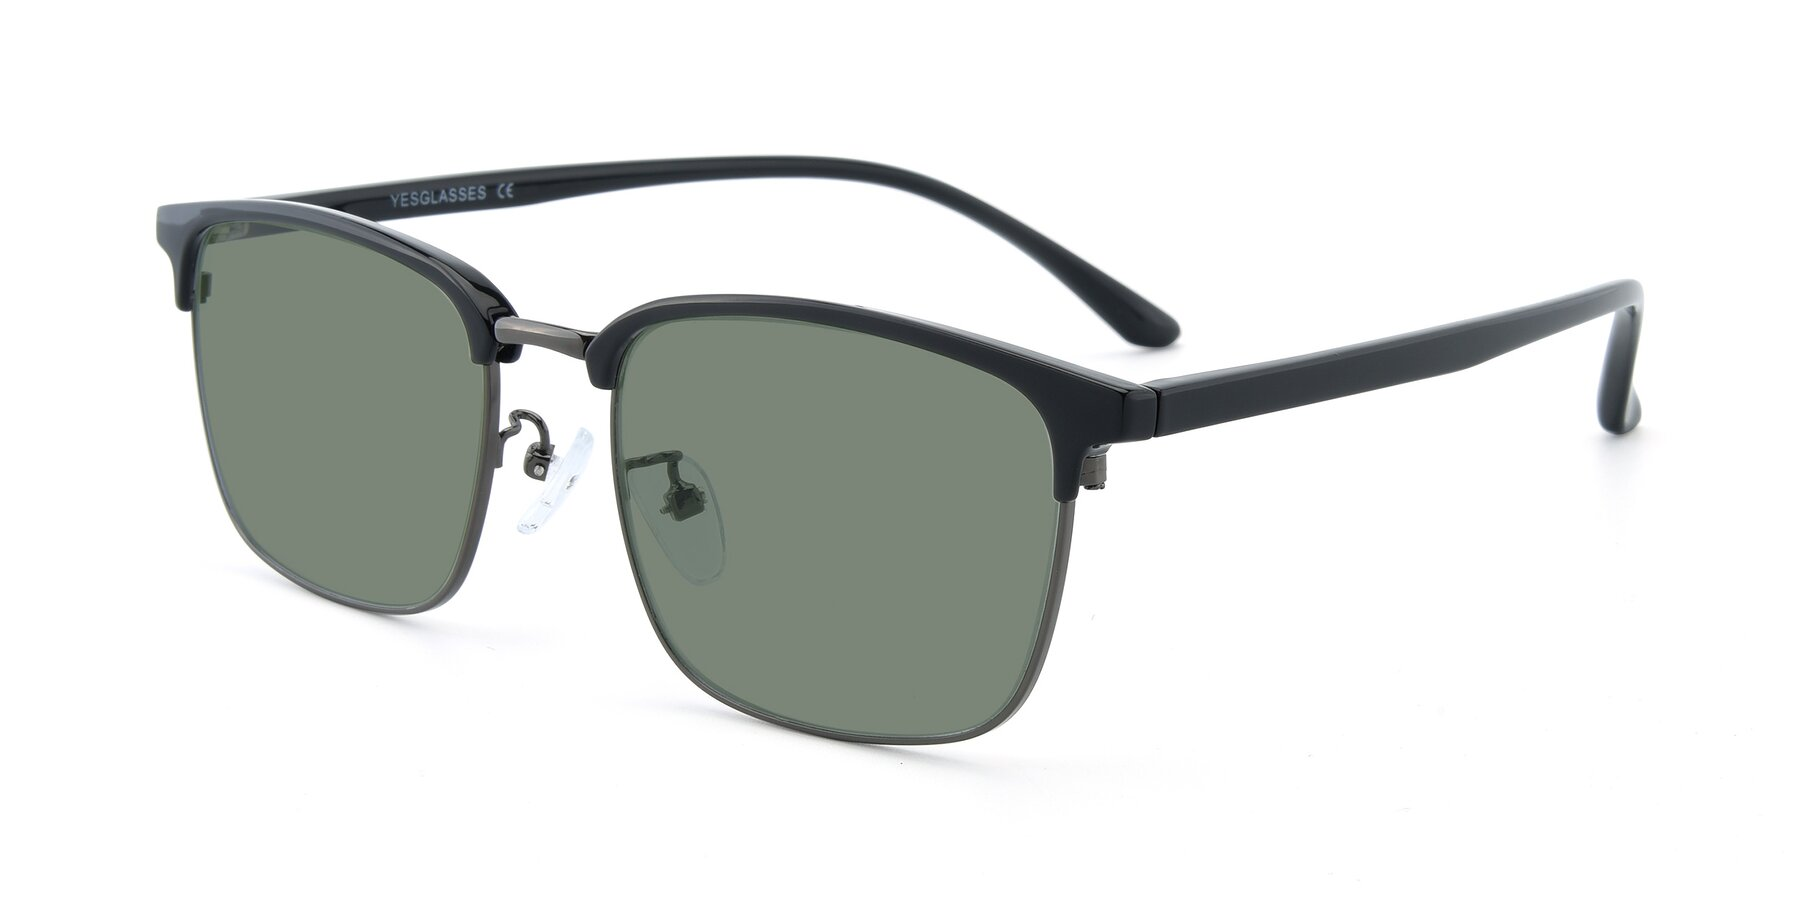 Angle of 00340 in Black-Gun with Medium Green Tinted Lenses